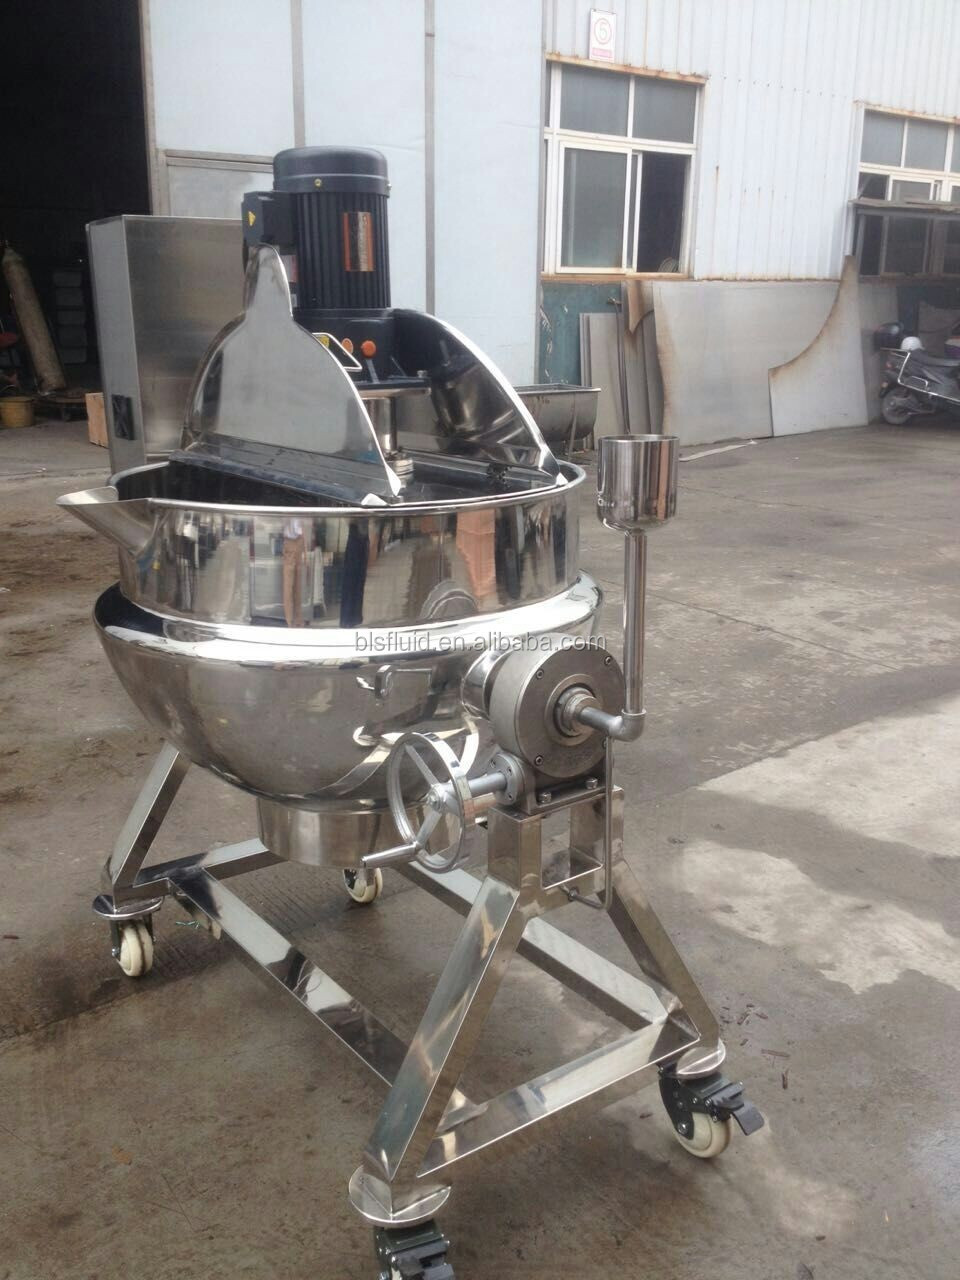 250L electric/gas cooking kettle mixer with top entry agitator